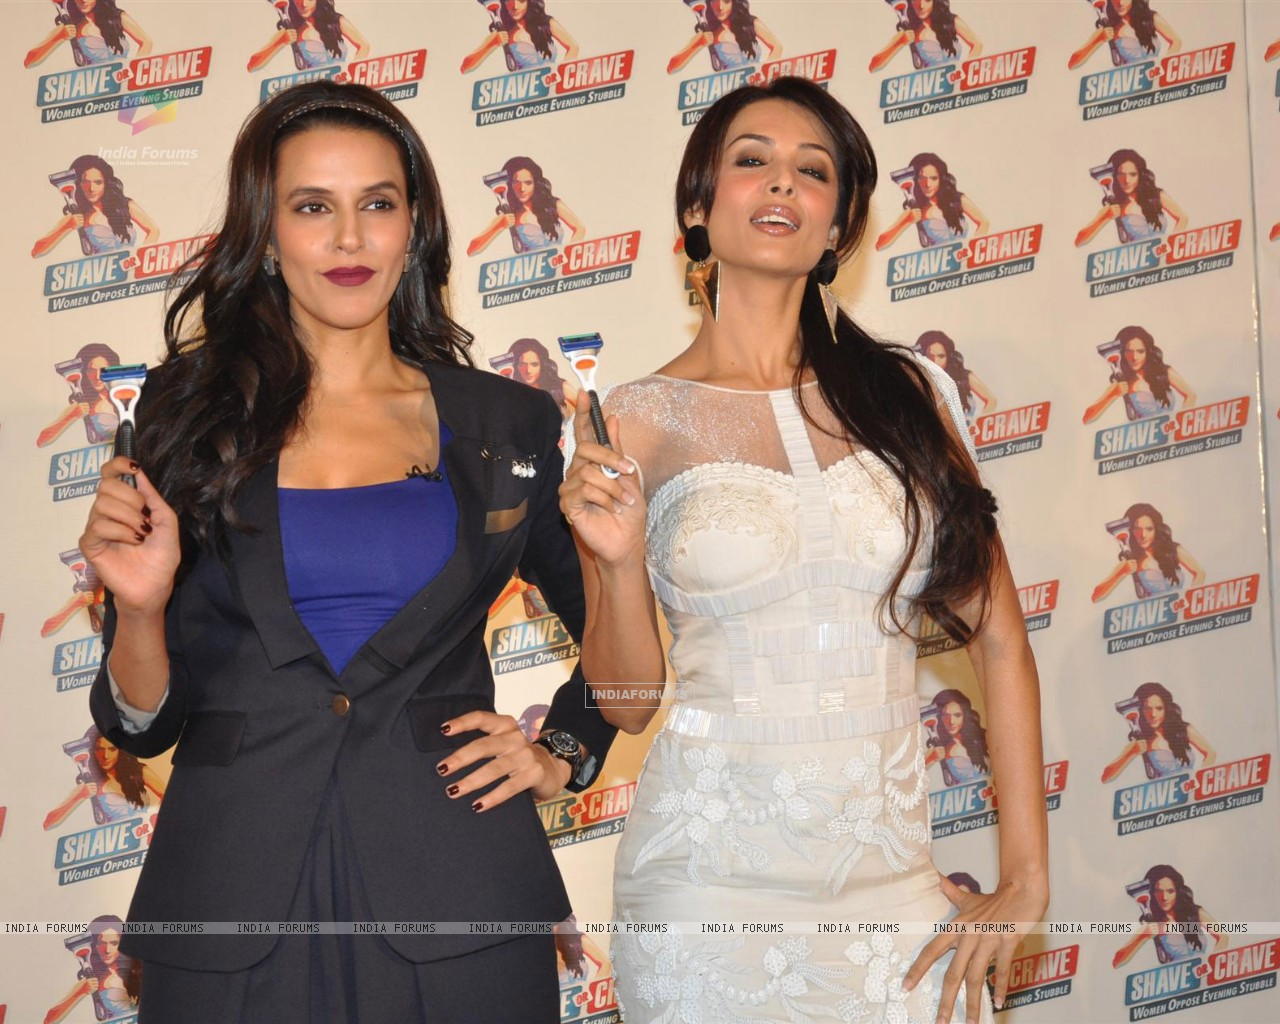 Neha Dhupia and Malaika Arora Khan at Gillette 'Shave or Crave' event (238213) size:1280x1024